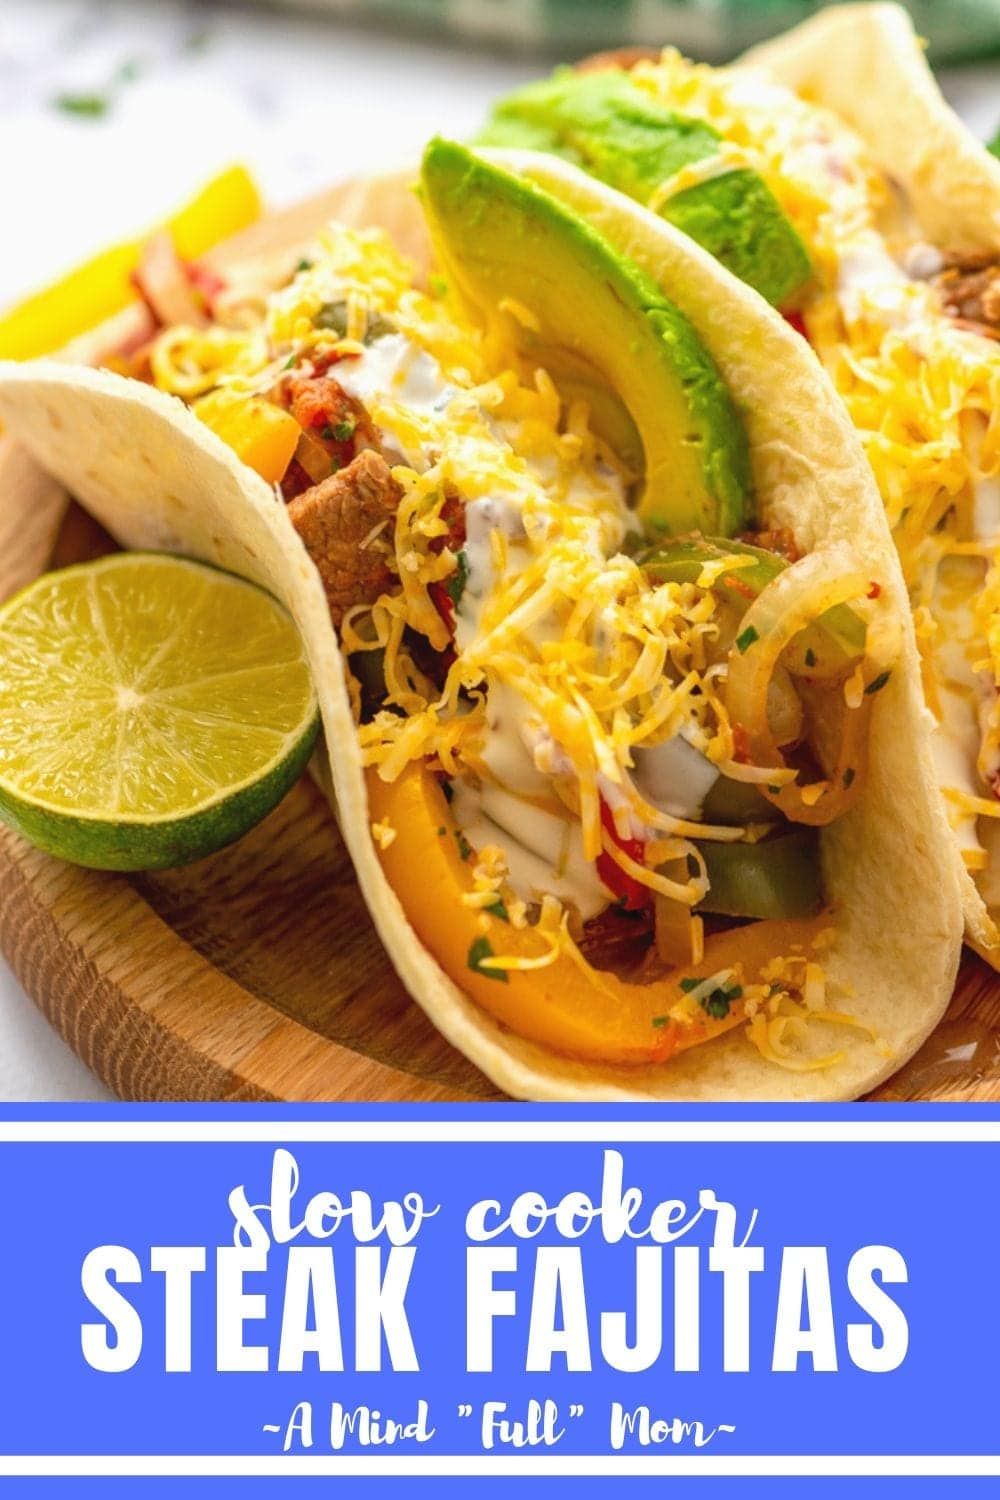 Skip the Mexican restaurant and let your slow cooker make steak fajitas for you! These Crock Pot Steak Fajitas come together with a few simple steps and are served up with all the flavor of a restaurant dish!